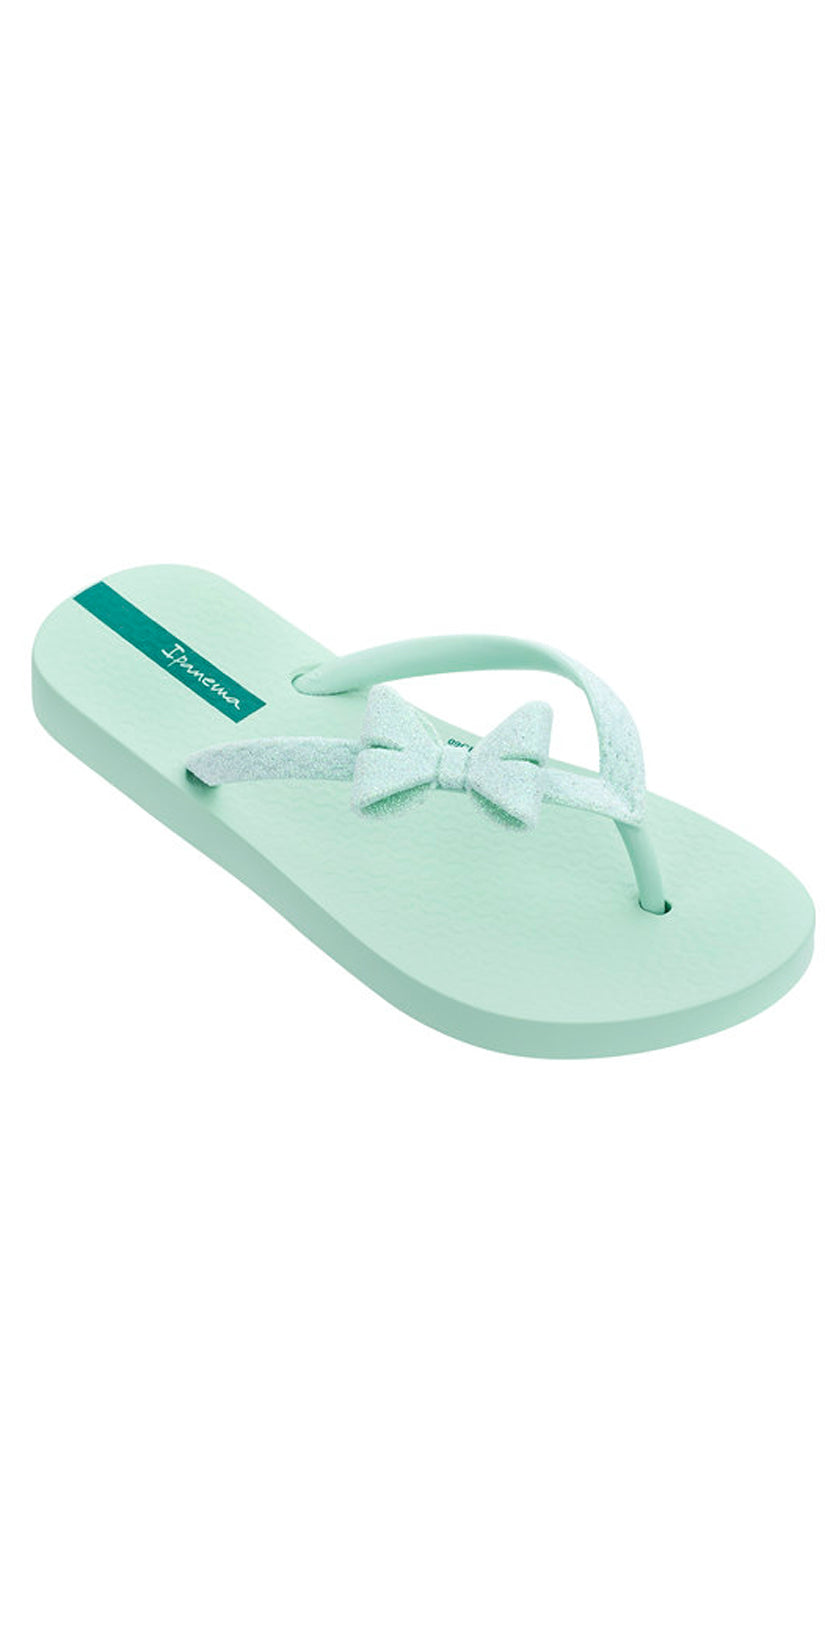 Kids Ipanema Sparkle Bow II Girls Flip Flops Pink and White Beach Sandals